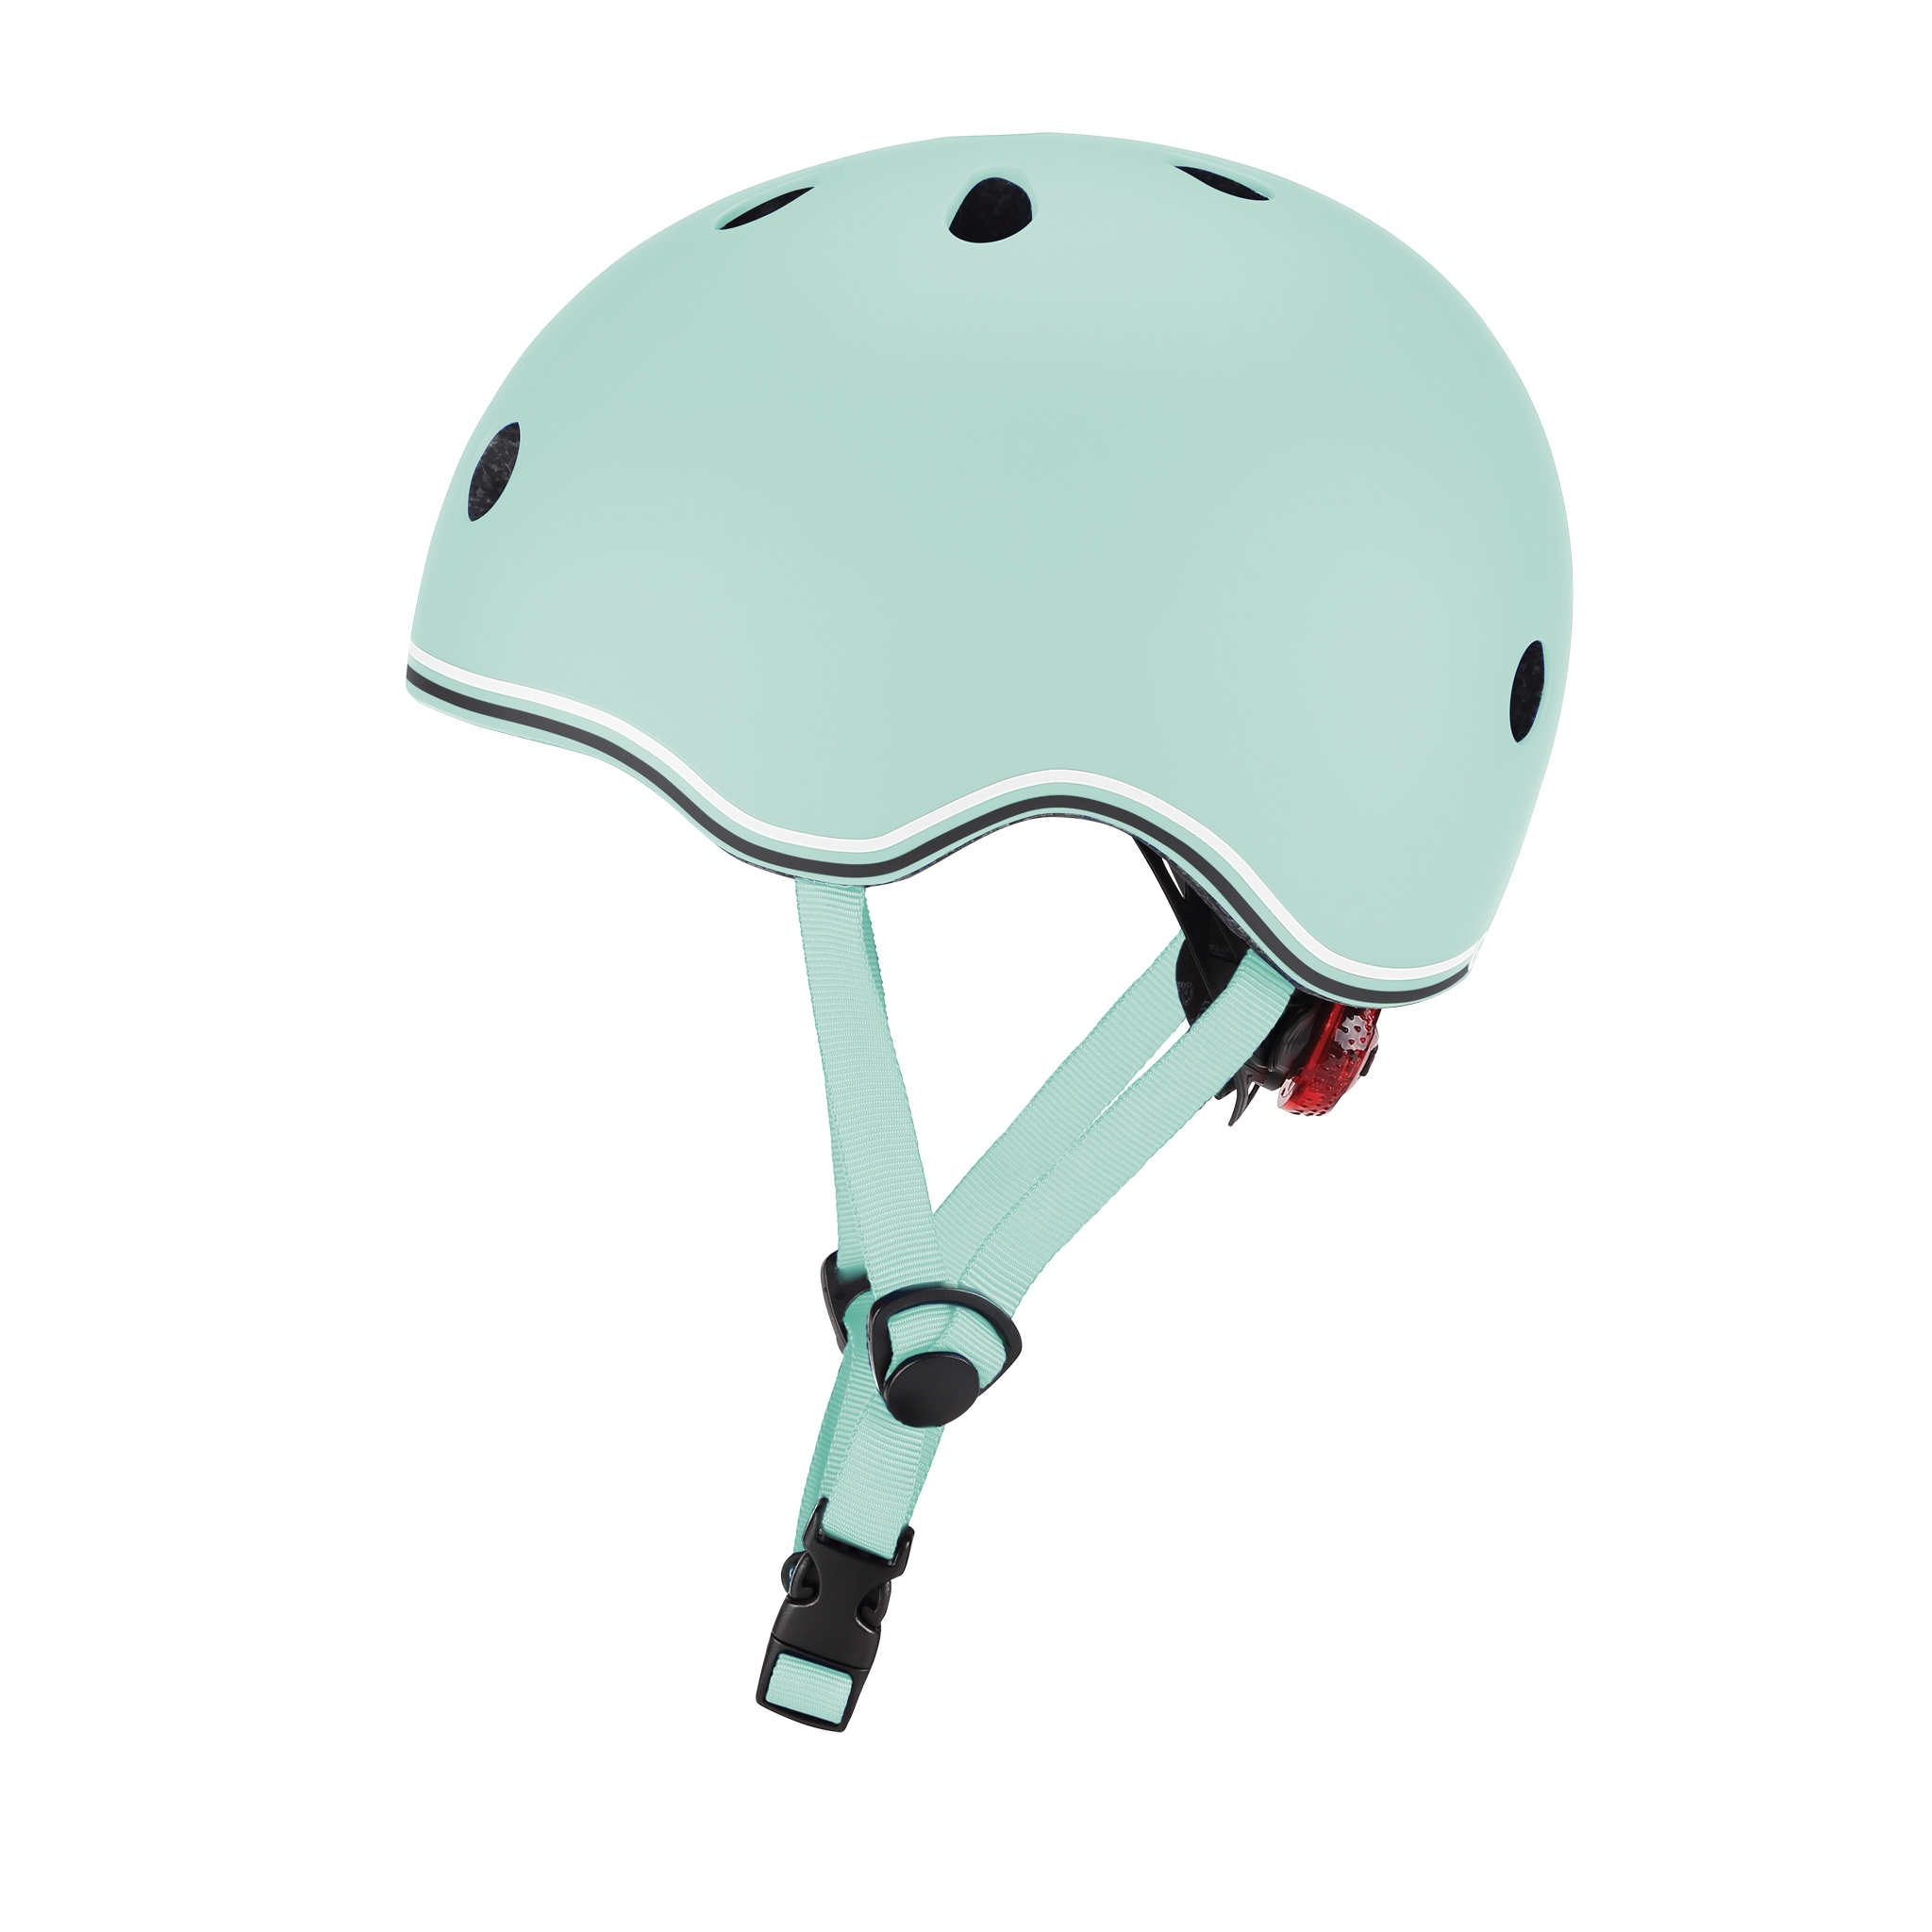 GO-UP-helmets-scooter-helmets-for-toddlers-with-adjustable-helmet-knob-pastel-green 1